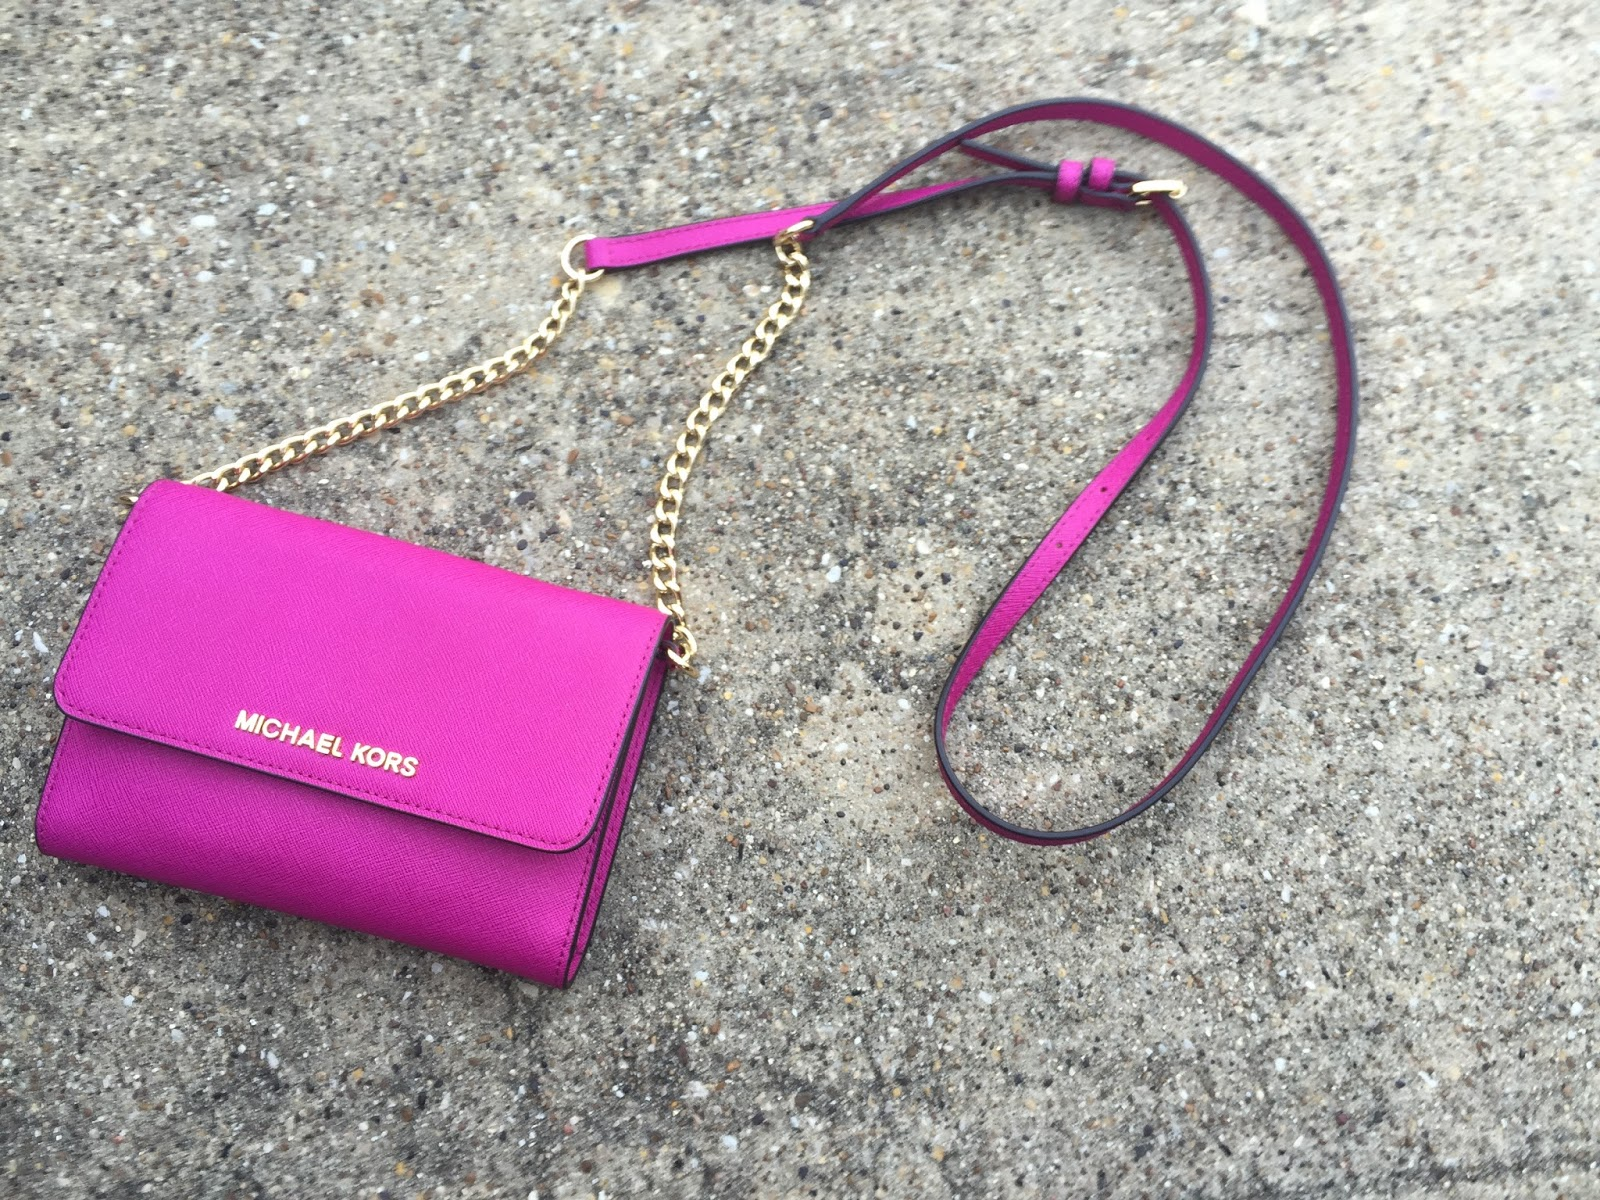 Michael Kors Jet Set Travel Large Phone Crossbody Bag In Small Satchel Pink Having This Has Rekindled My Love For Compact Bags Im Thinking Of Buying The Mk Cindy Dome Cross Body Next